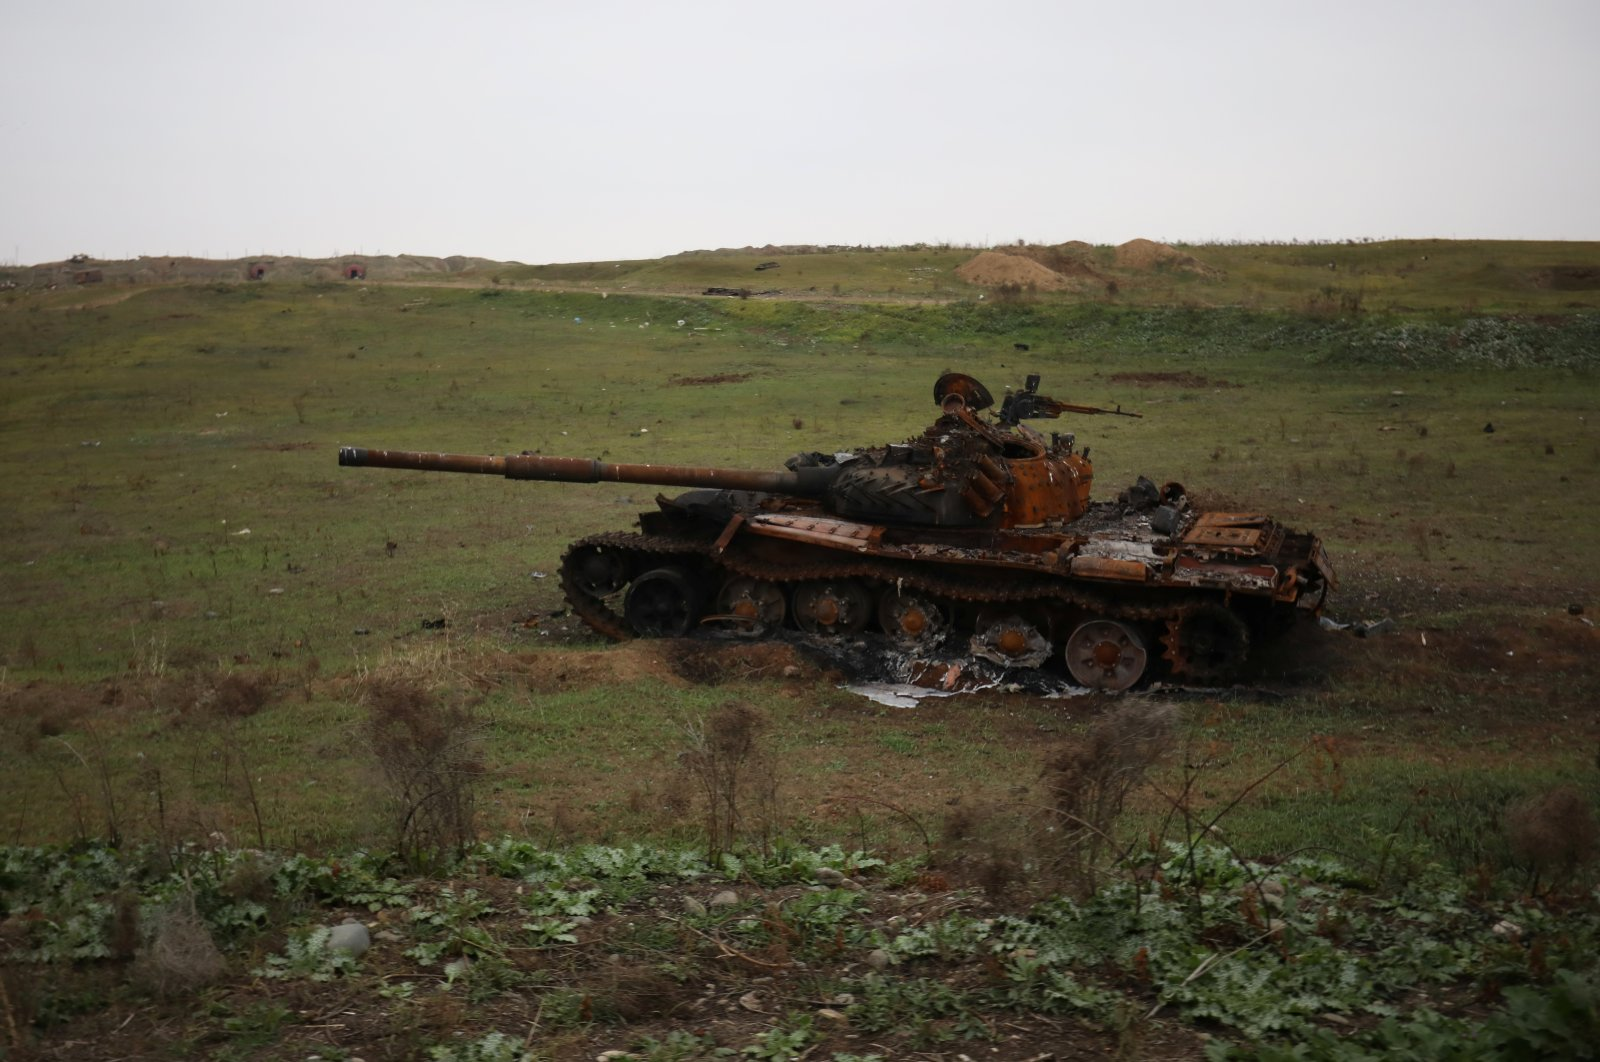 A view shows a destroyed tank in the recently liberated Fuzuli district in the region of Nagorno-Karabakh, Nov. 18, 2020. (Reuters Photo)